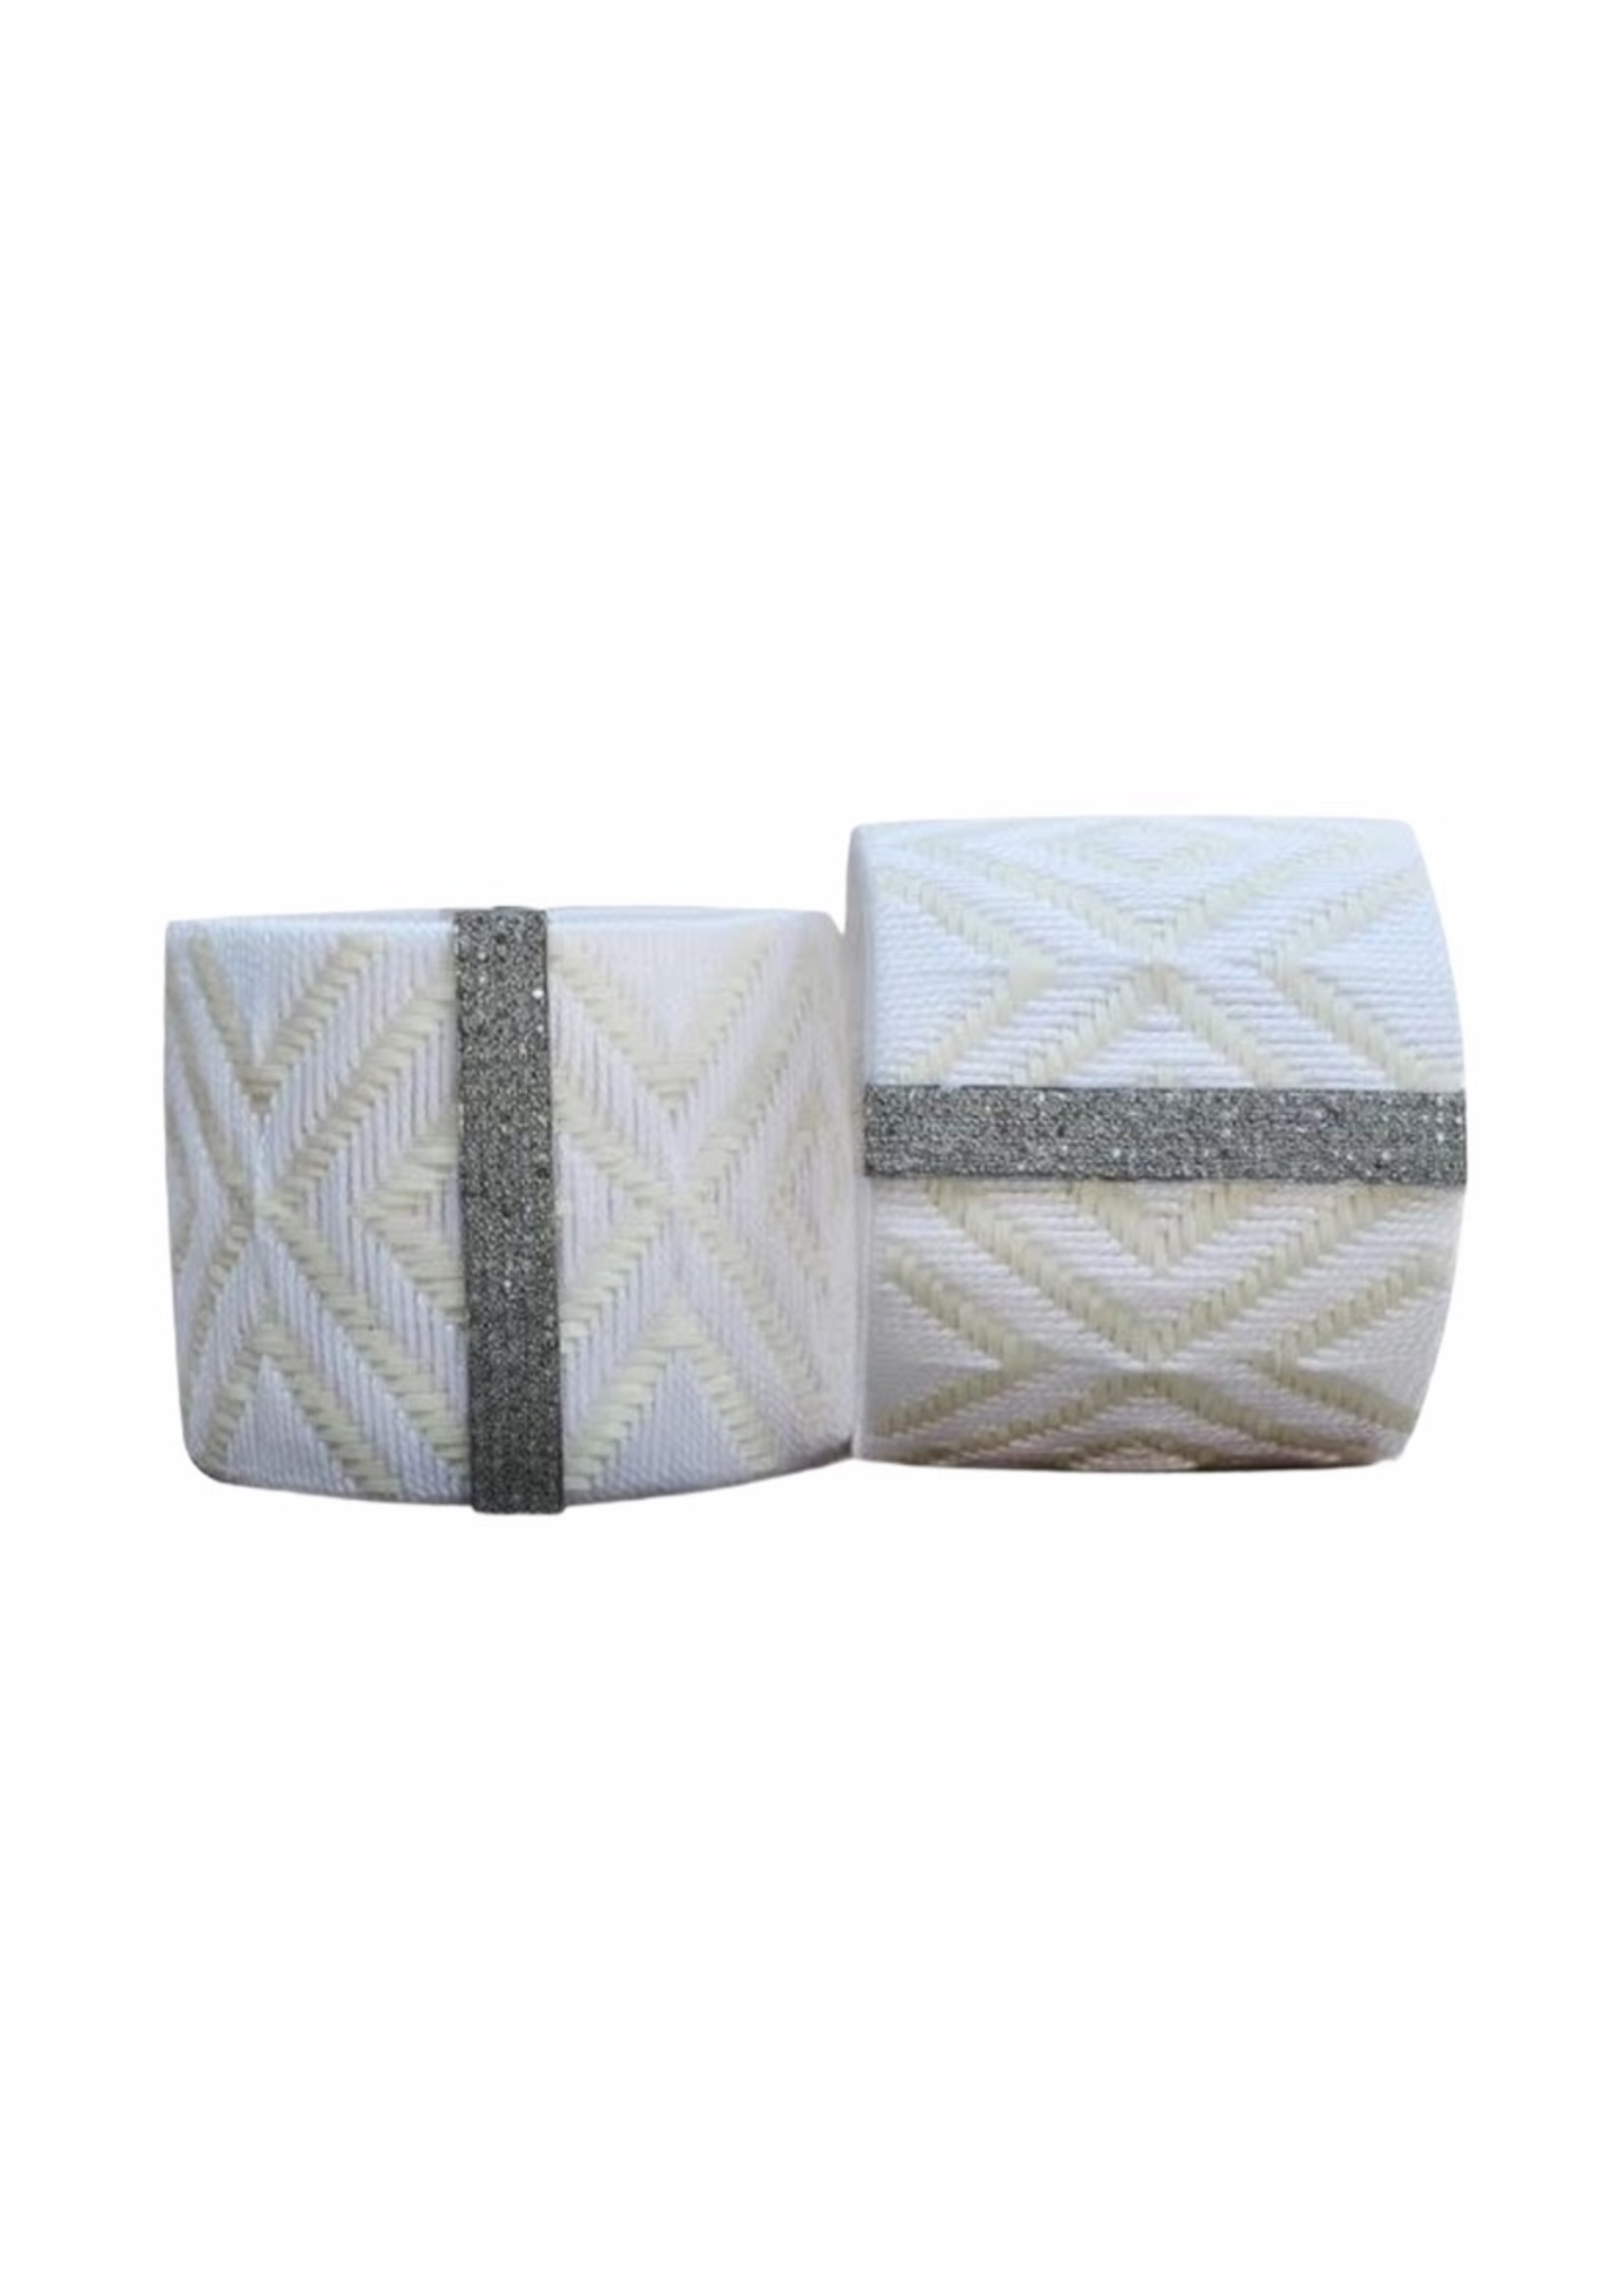 S. Carter Designs Large White Woven Cuff